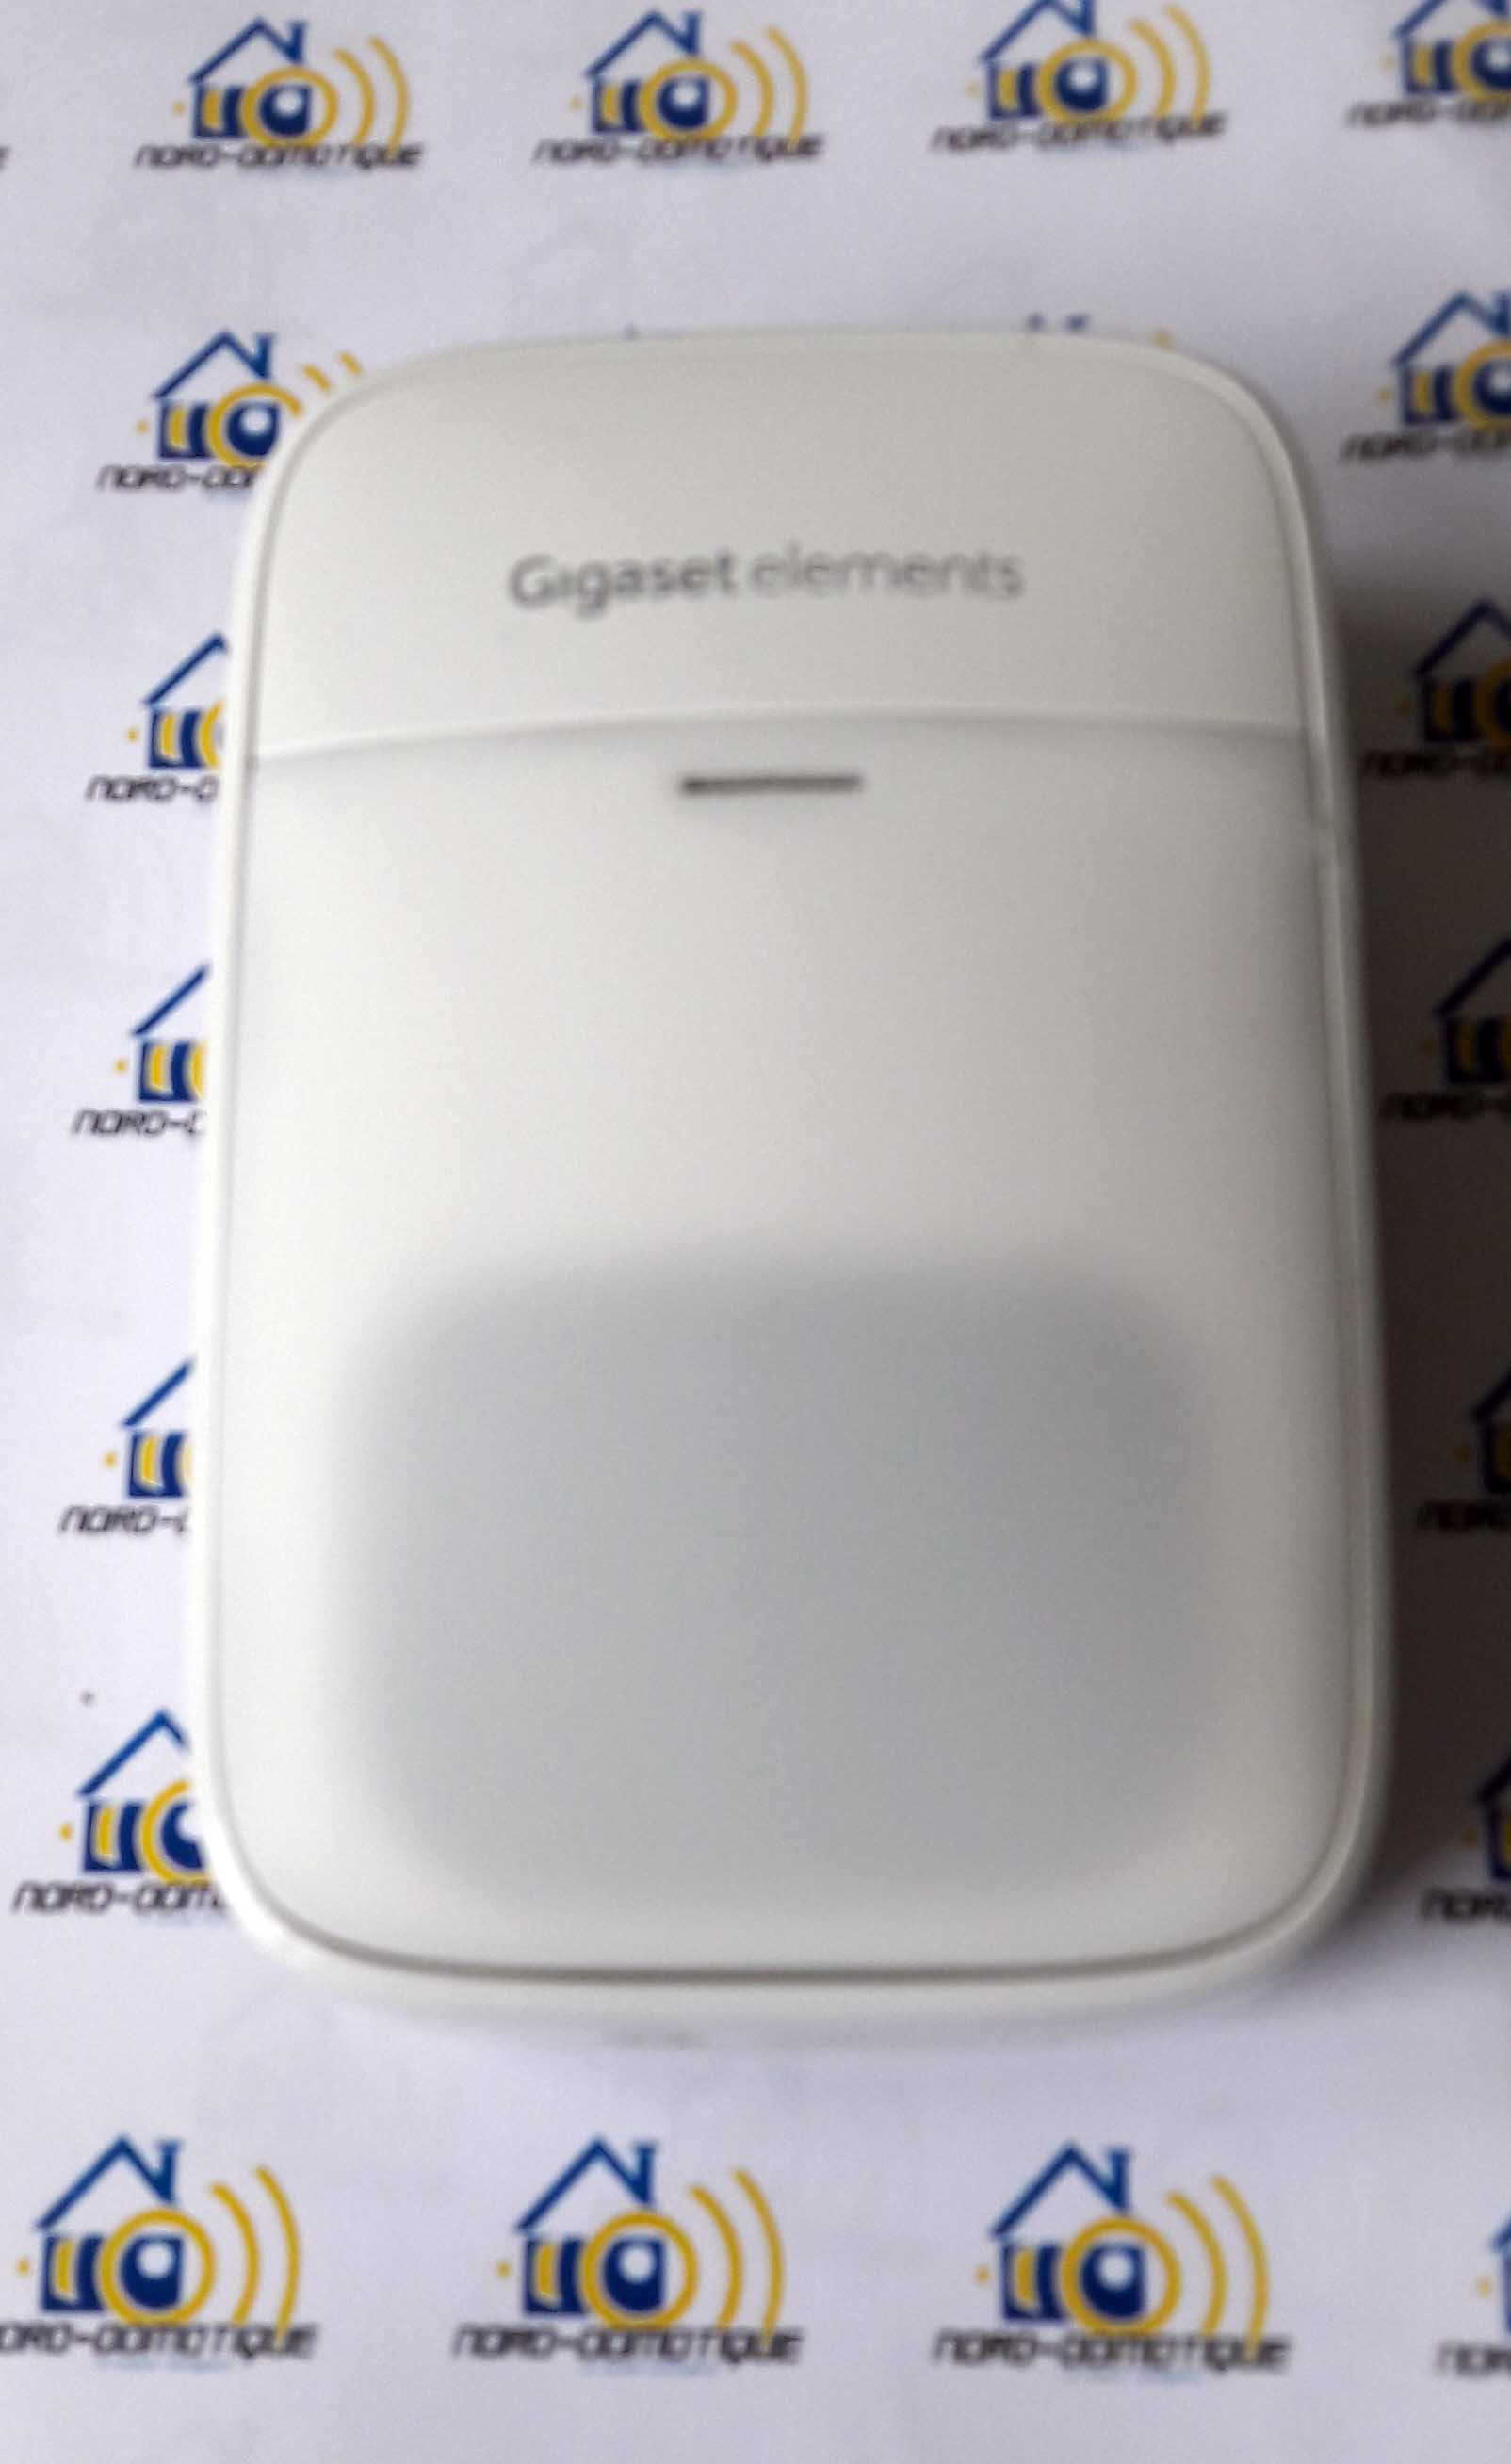 Gigaset-6 La box Gigaset Elements présentation et tests de l'alarme connectée